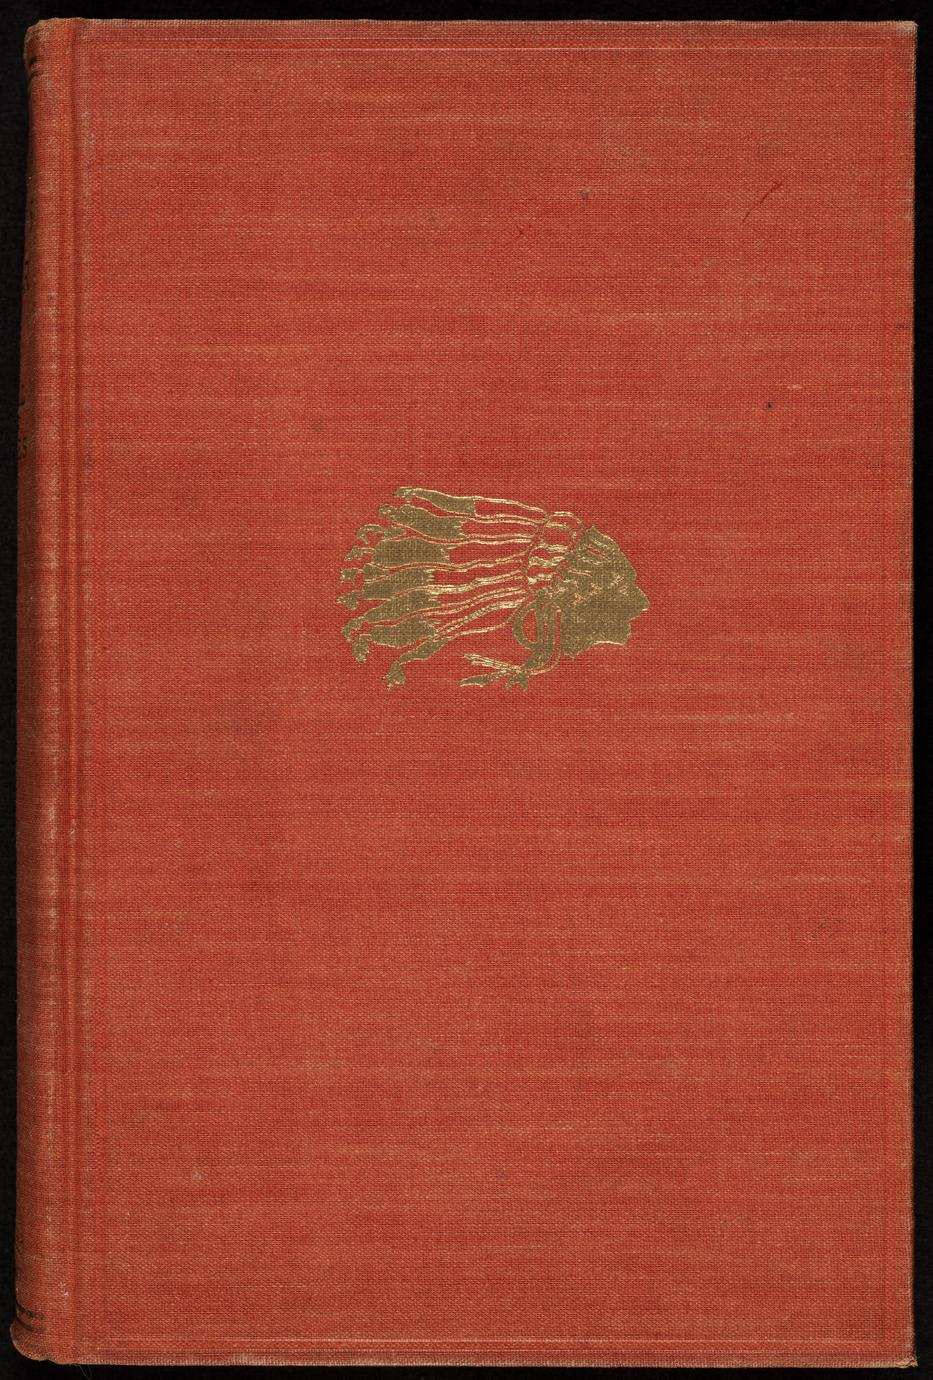 One man's war : the story of the Lafayette escadrille (1 of 2)